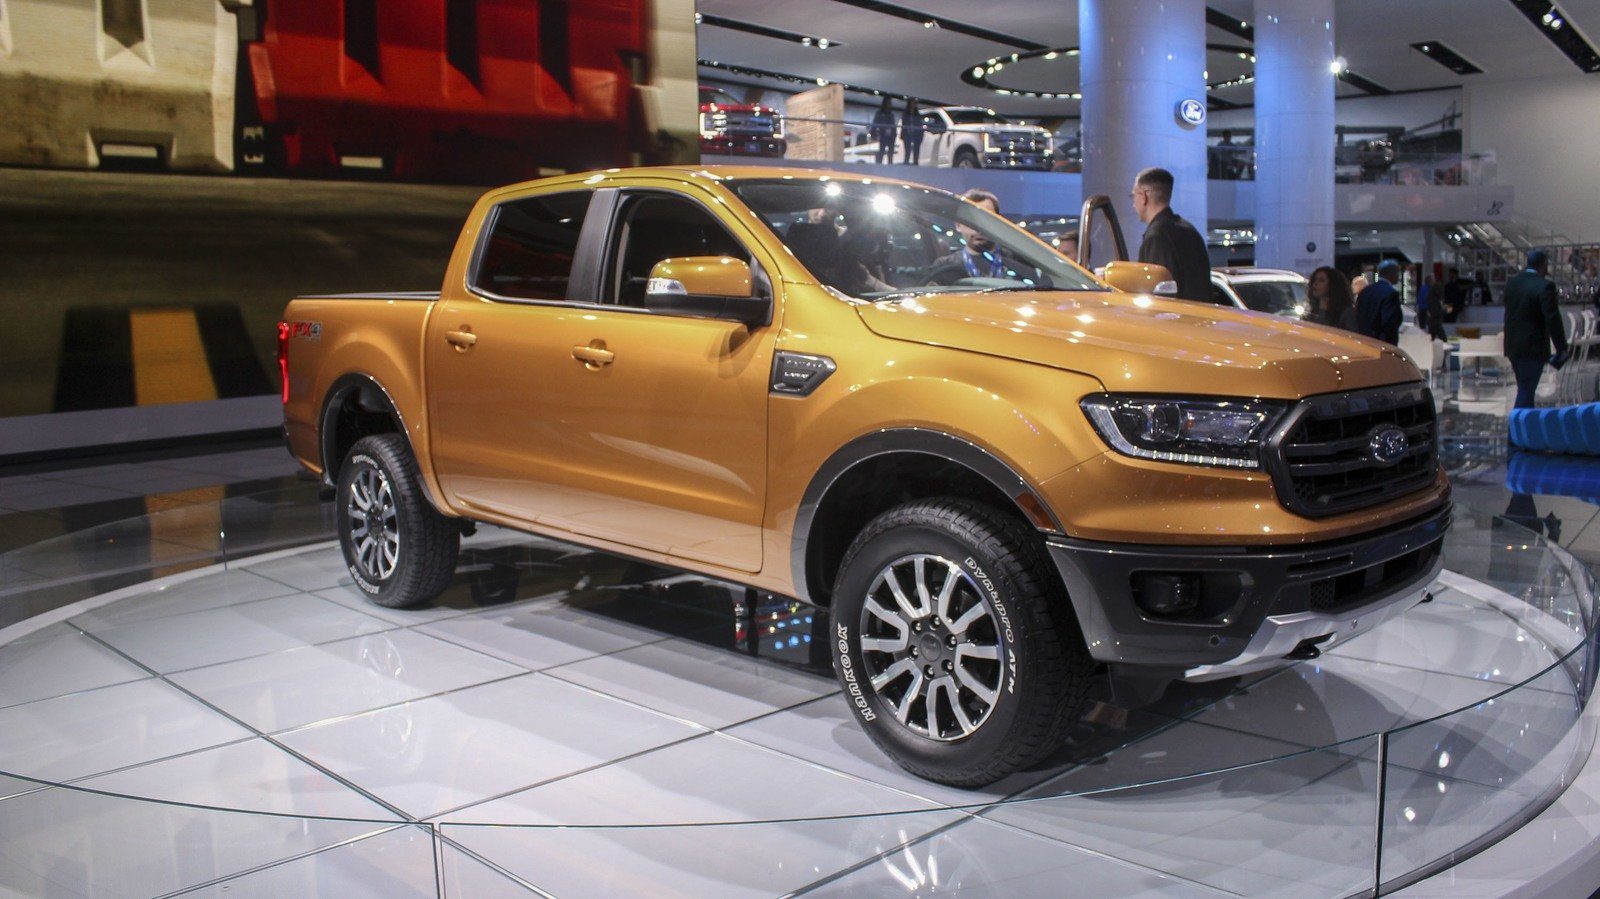 If You Buy A 2019 Ford Ranger, Your Oil Change Could Be More